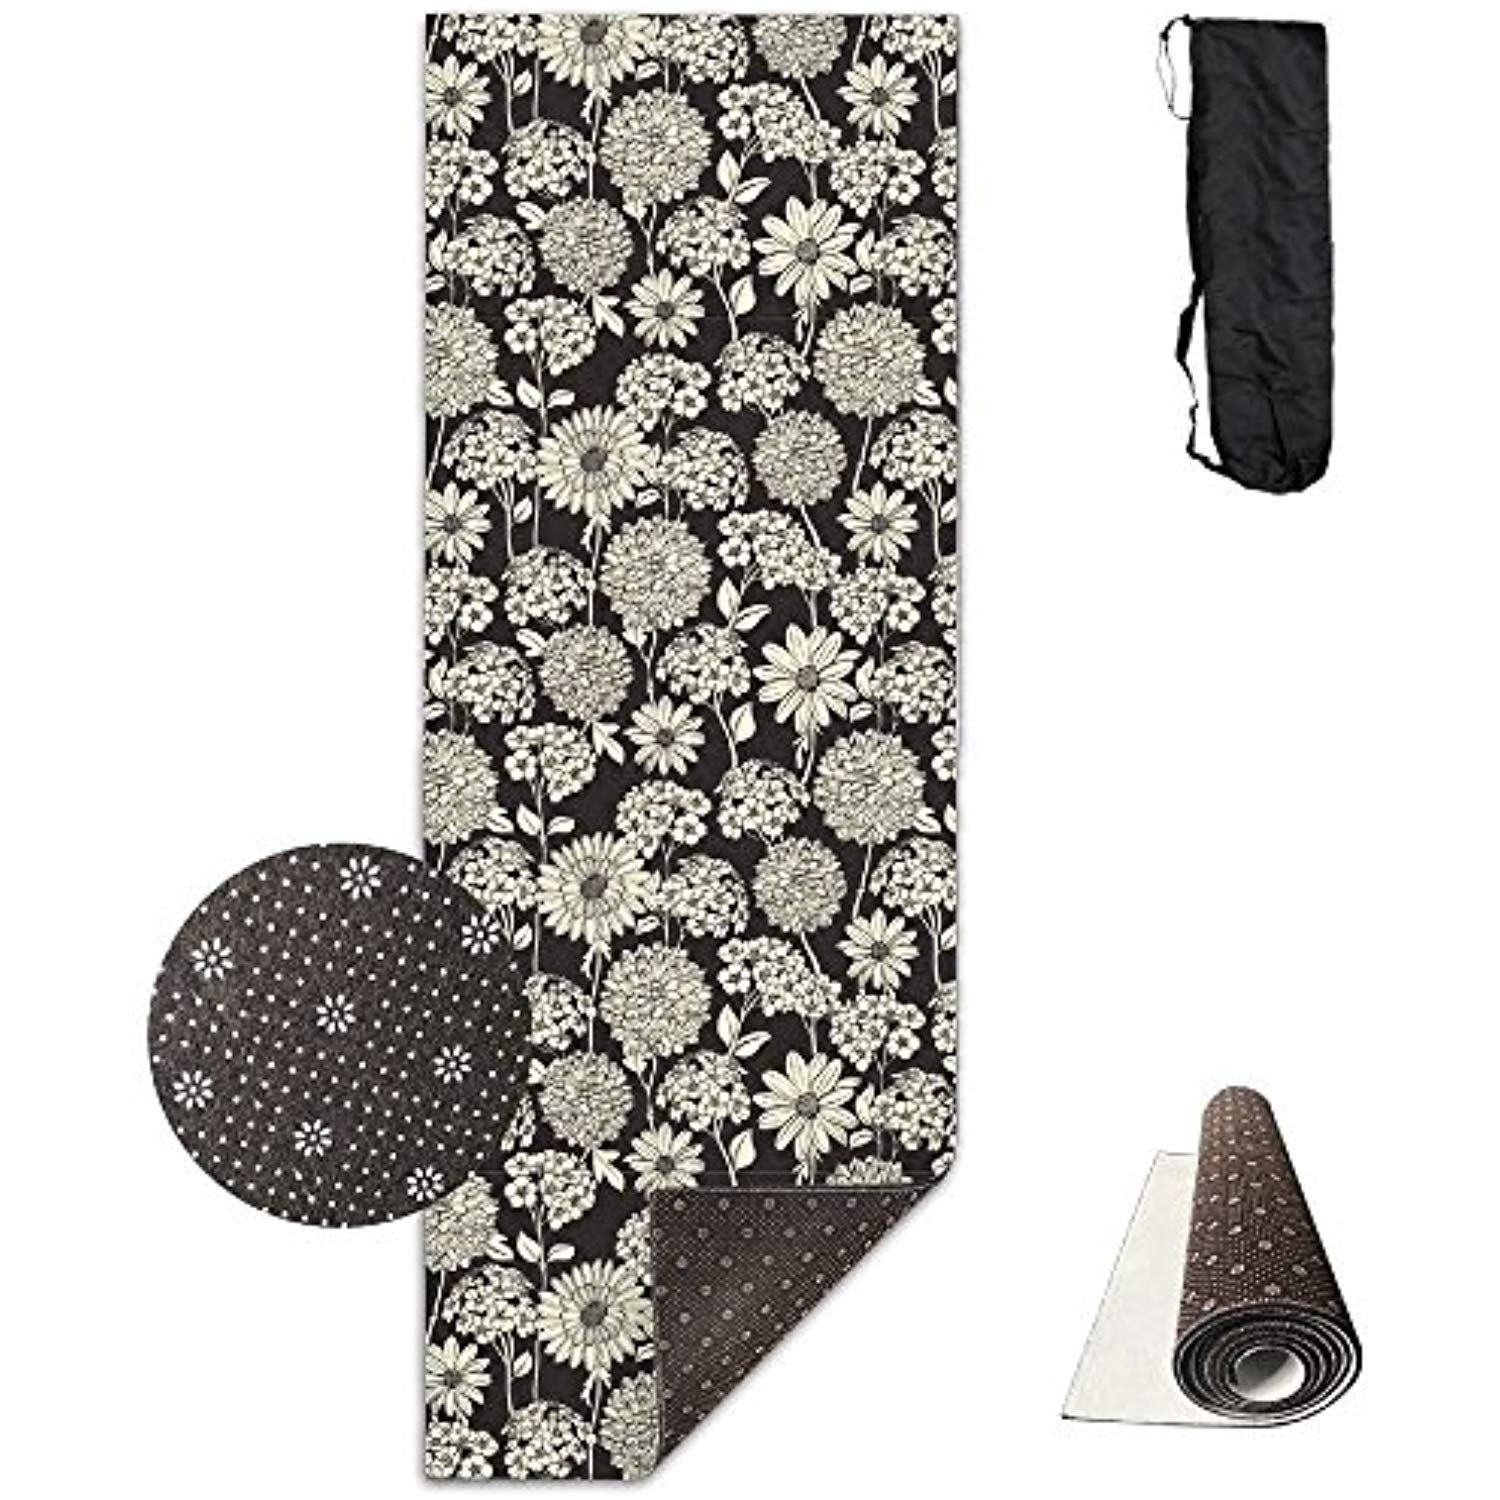 d074fdf82f Unisex Floral Pattern Prints Textures Custom Printing Yoga Mats With Carrying  Bag -- For more